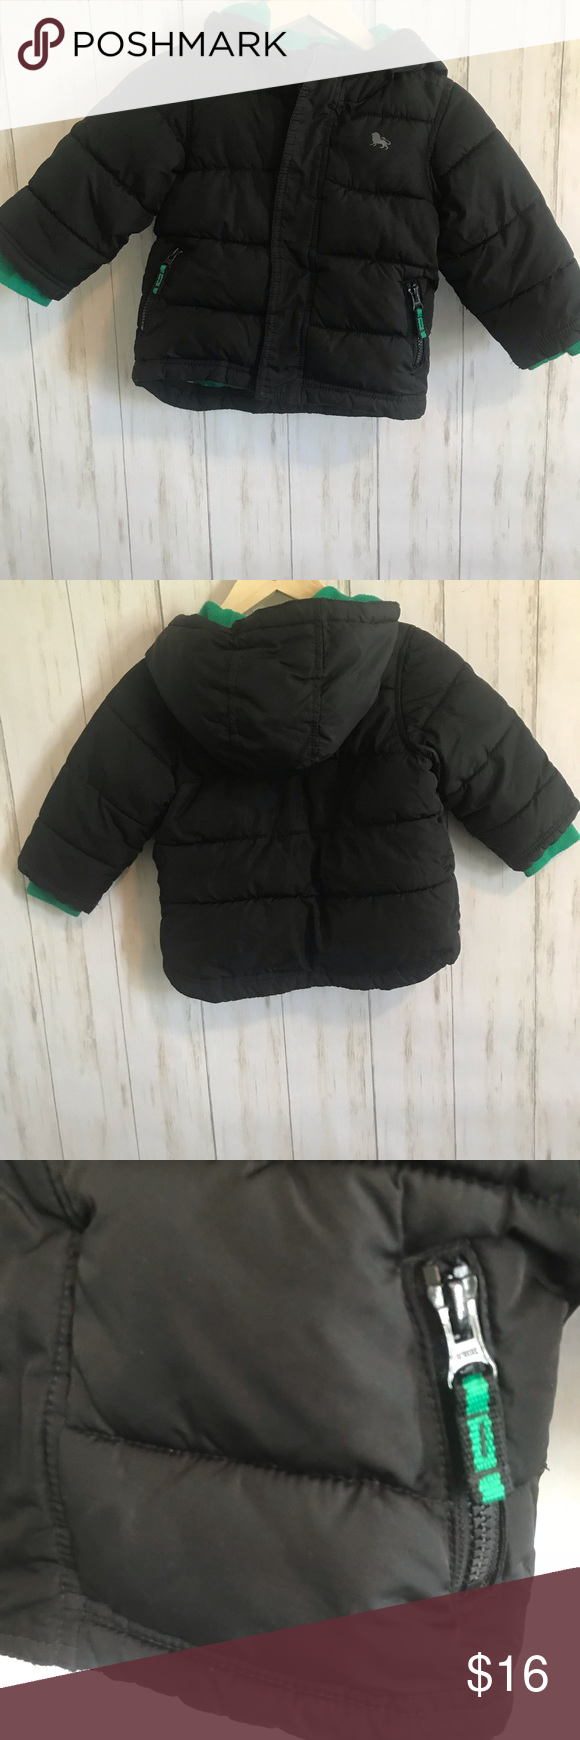 6889e533d Baby boy old navy puffer jacket size 18-24 Months